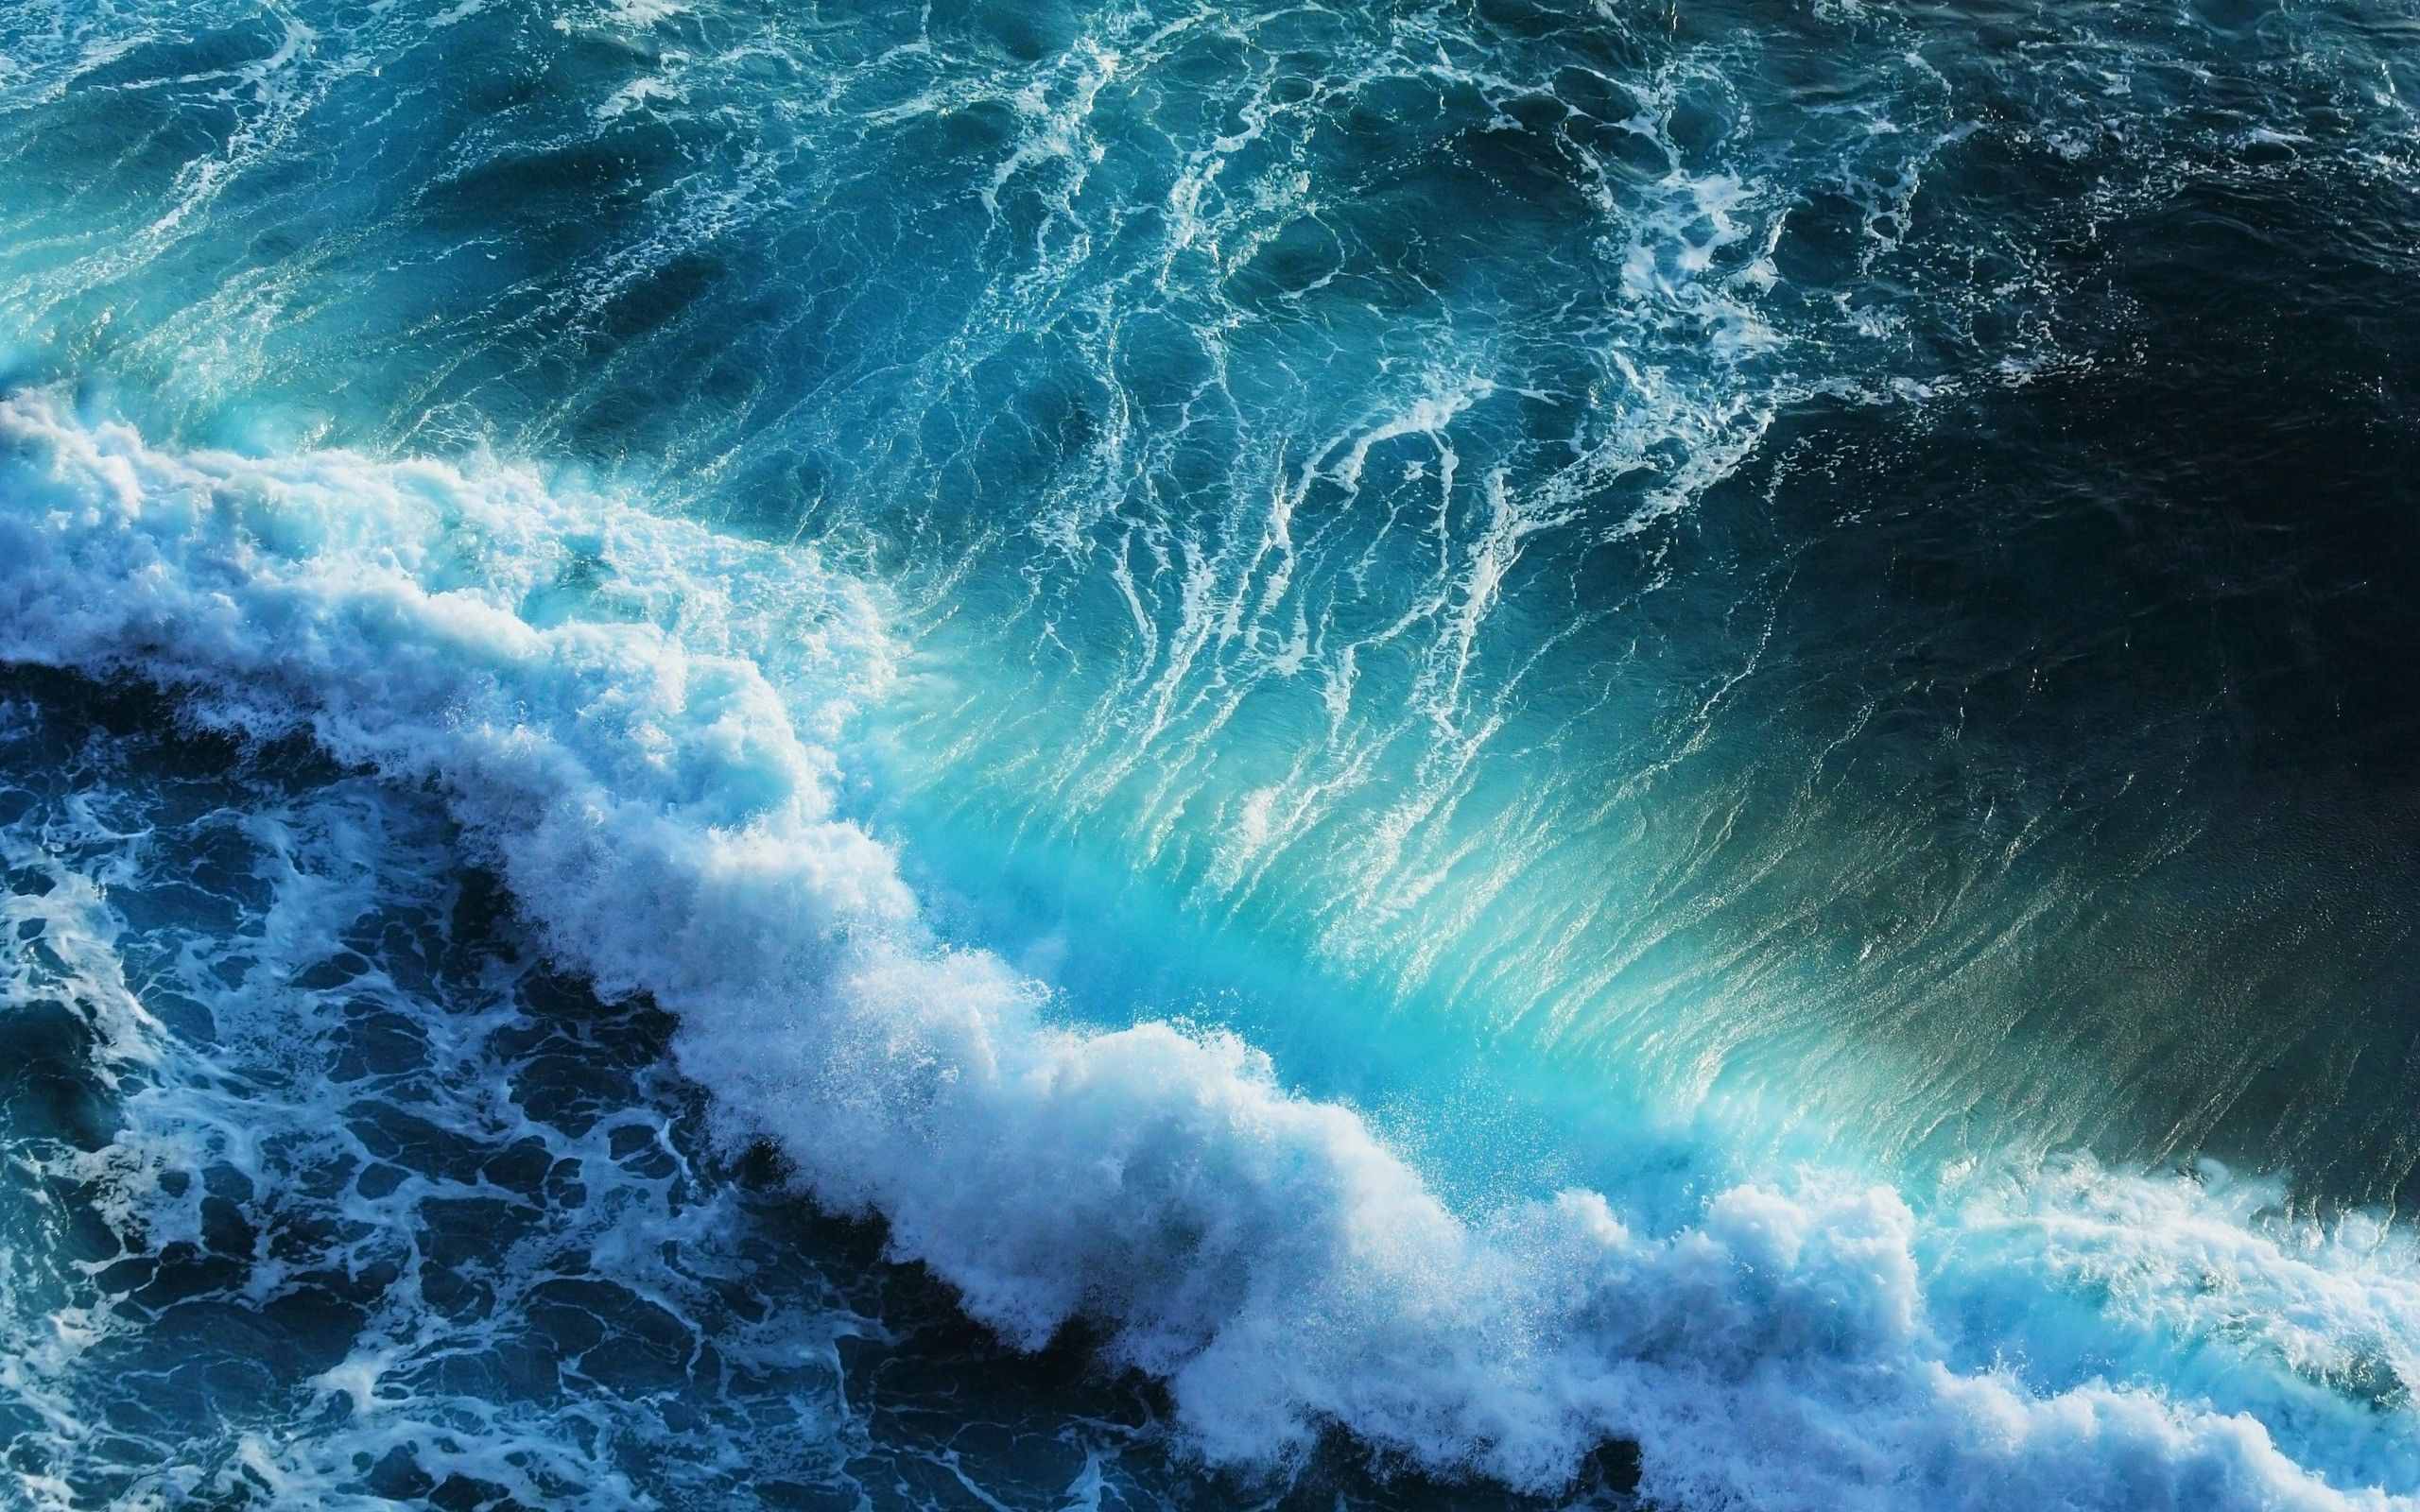 The Ocean Waves Wallpaper Ocean Wallpaper Ocean Waves